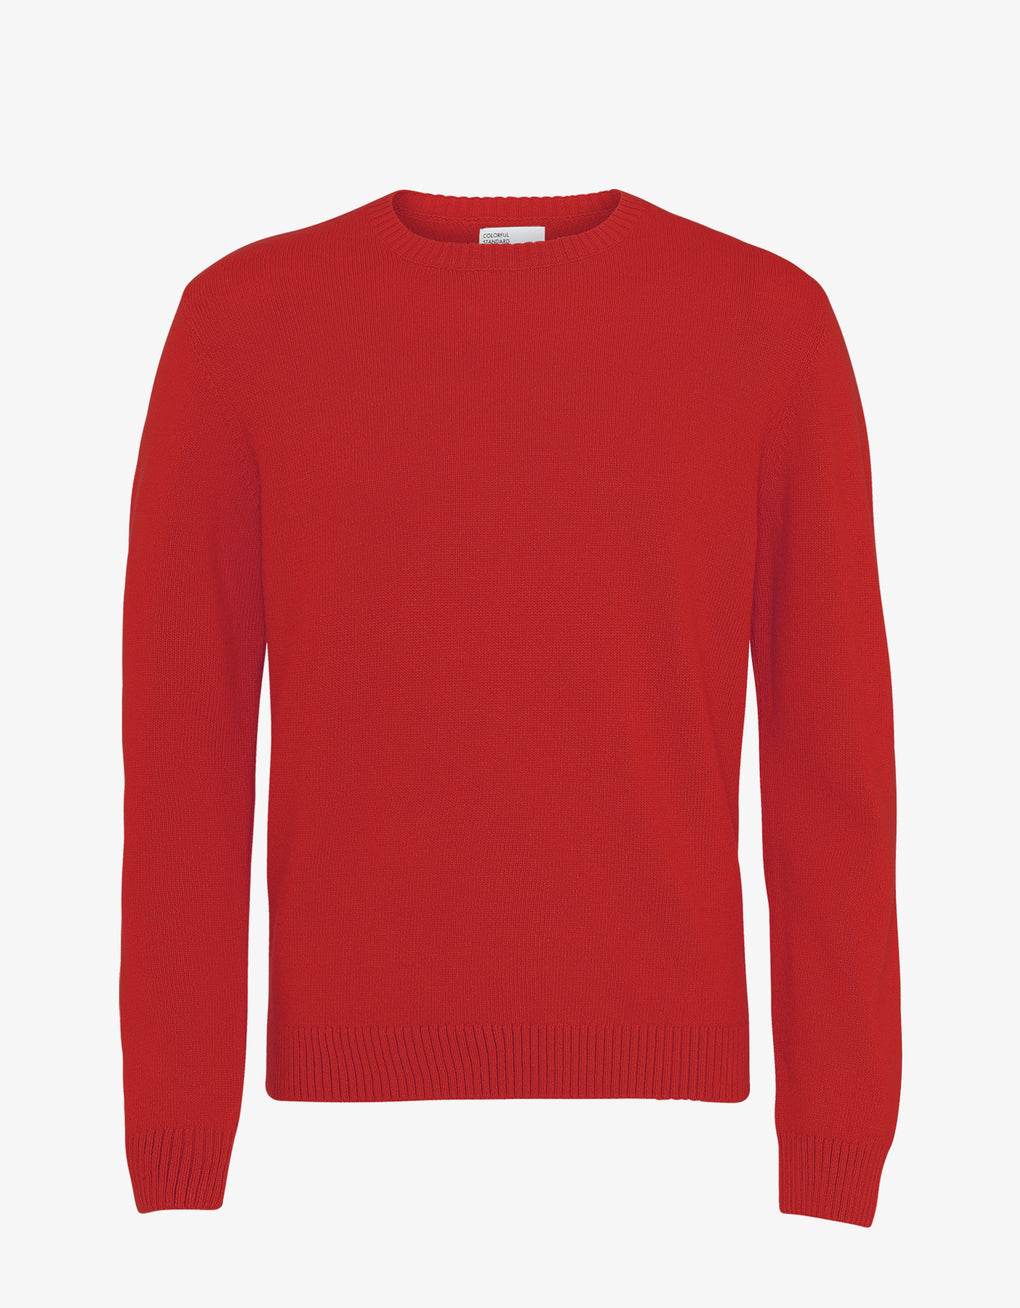 Colorful Standard Merino Wool Crew Merino Crewneck Scarlet Red